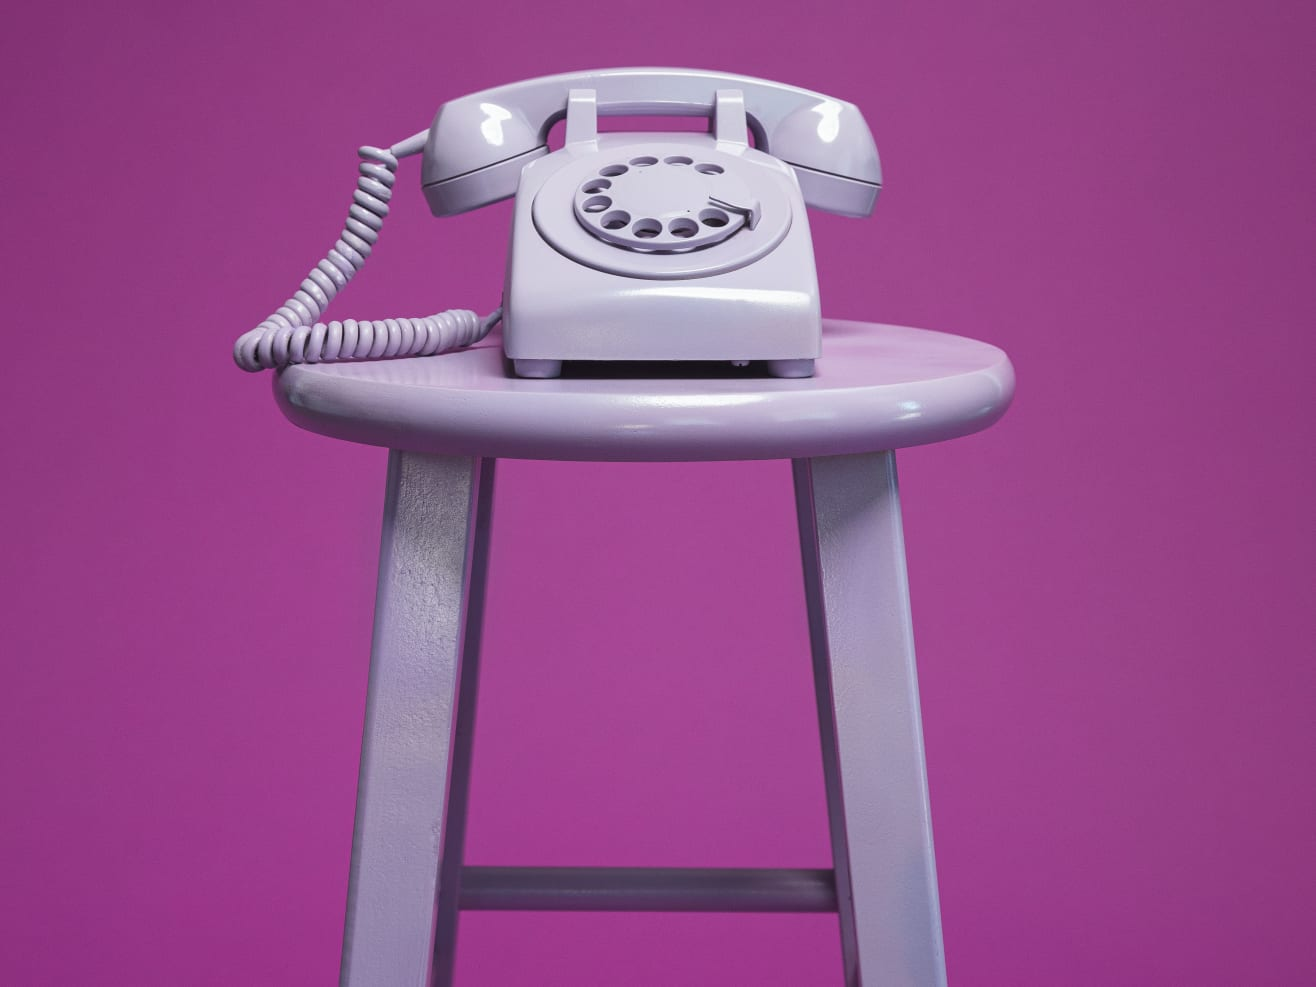 Phone sitting on a stool